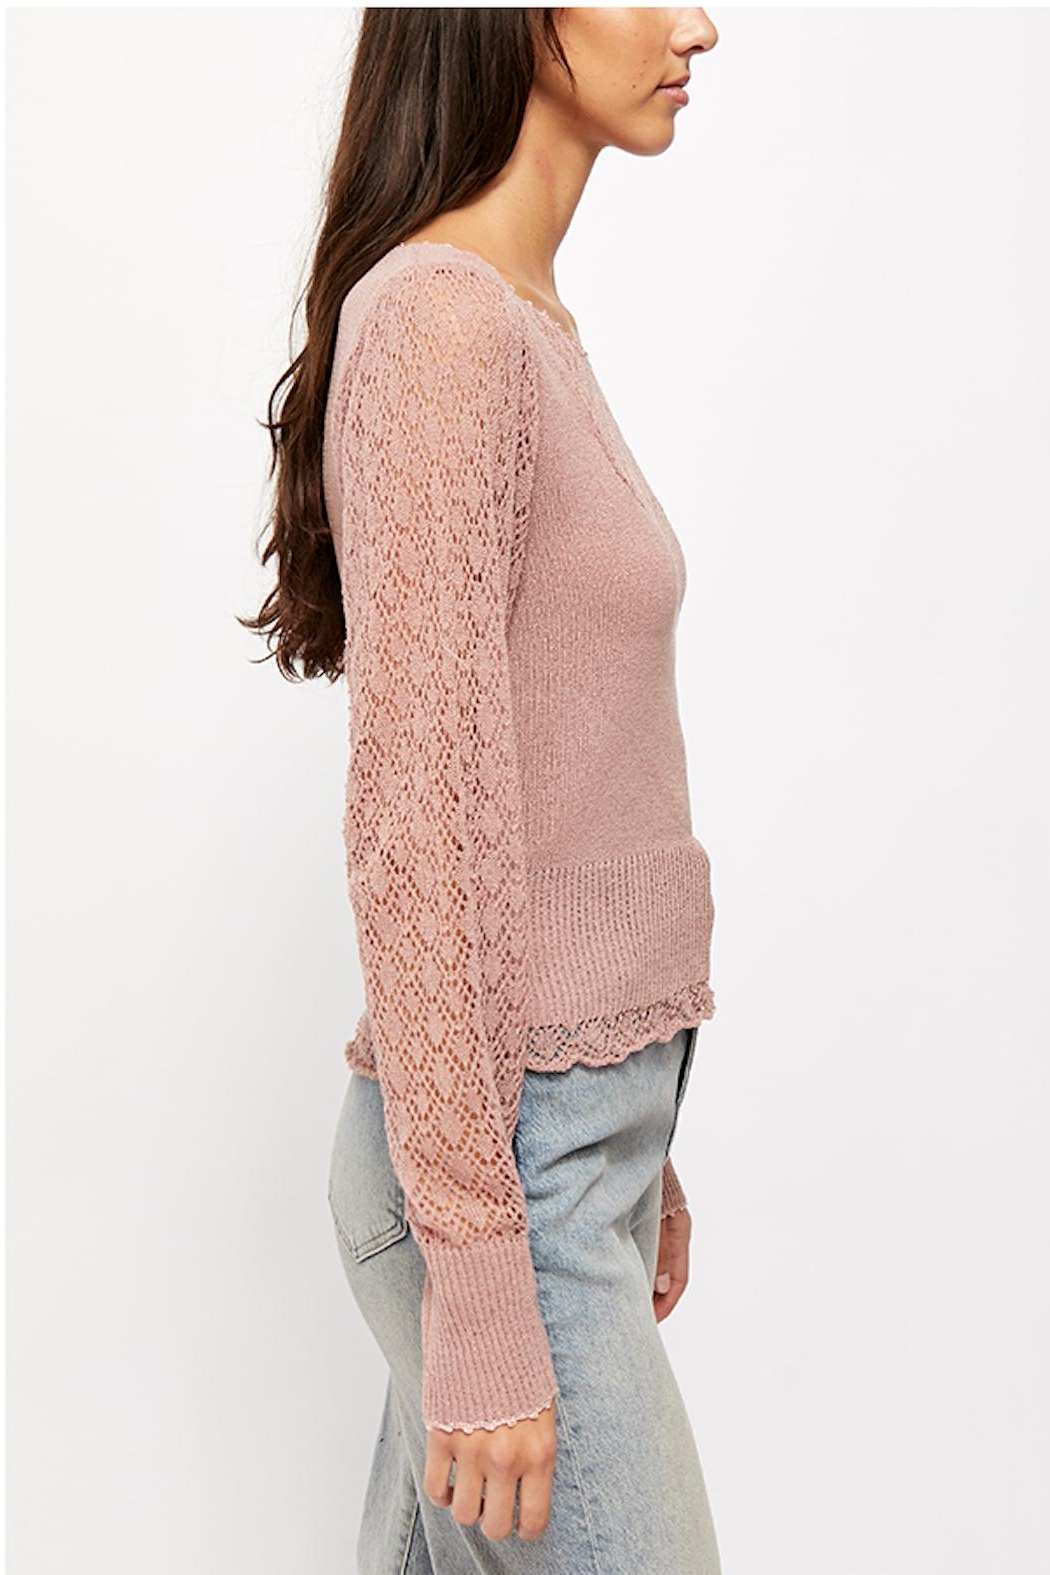 Free People Cyrstallized Sweater - Front Full Image